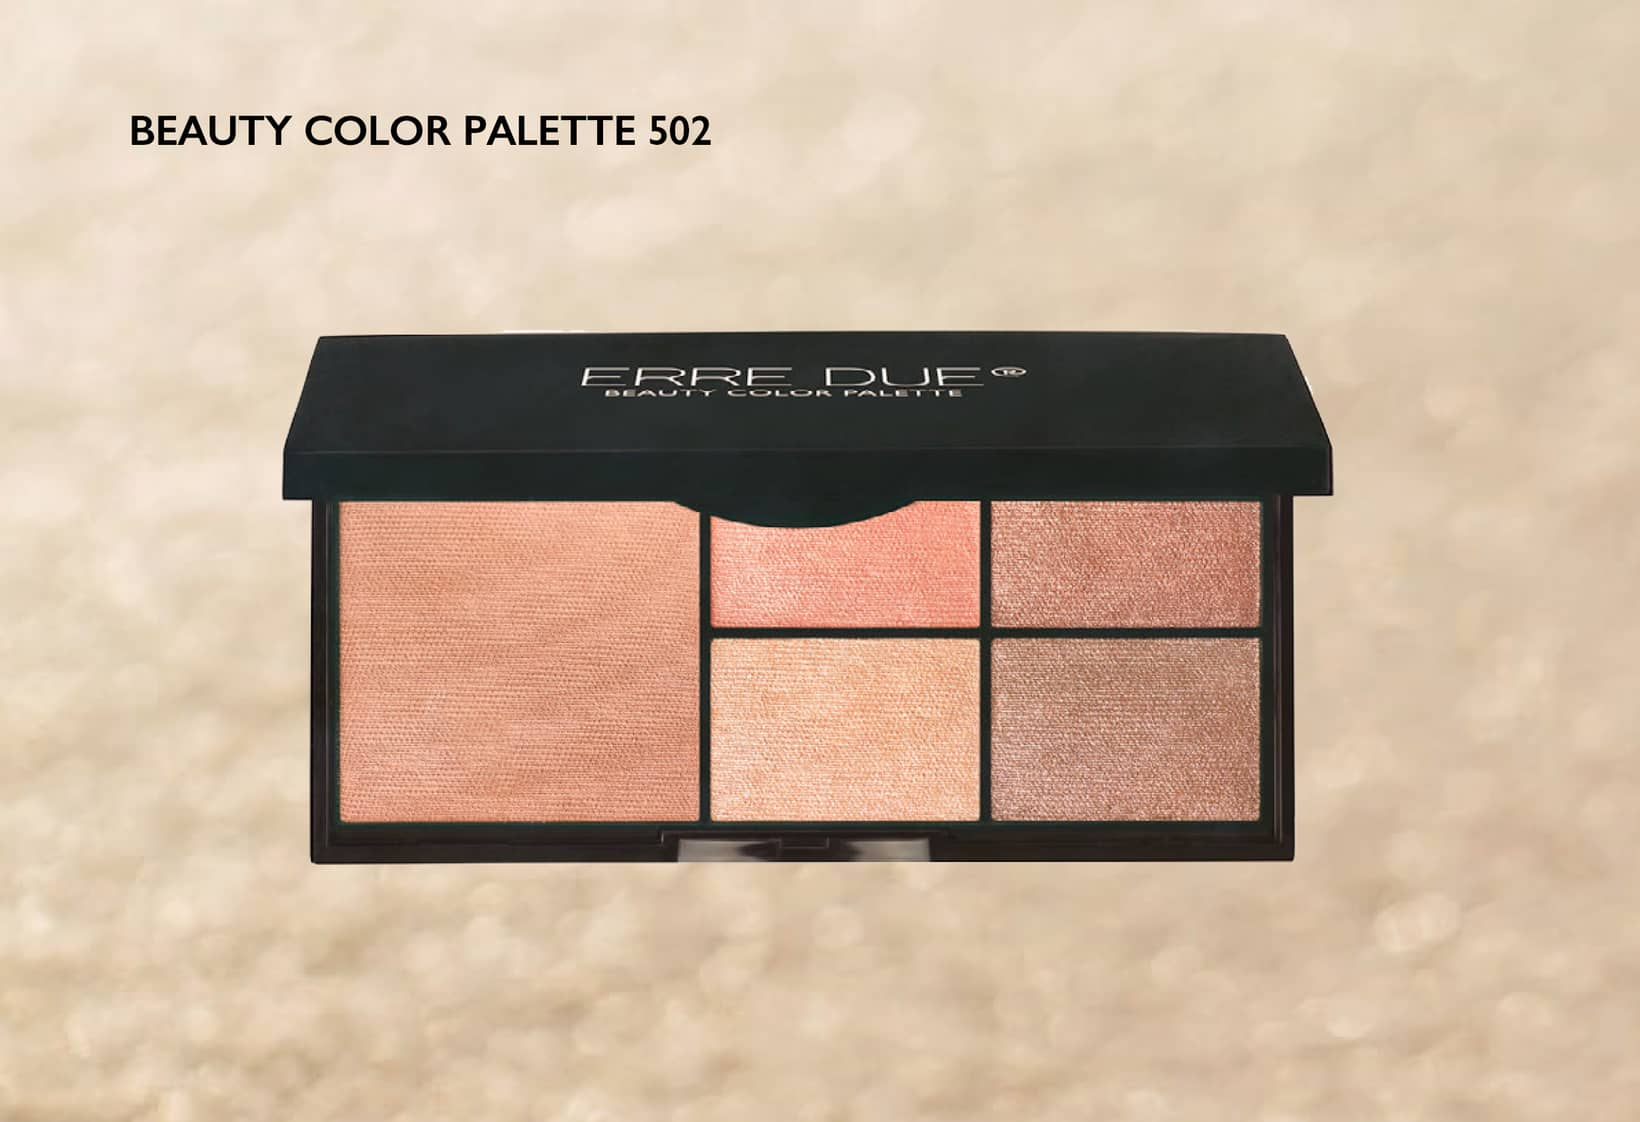 BEAUTY COLOR PALETTE 502